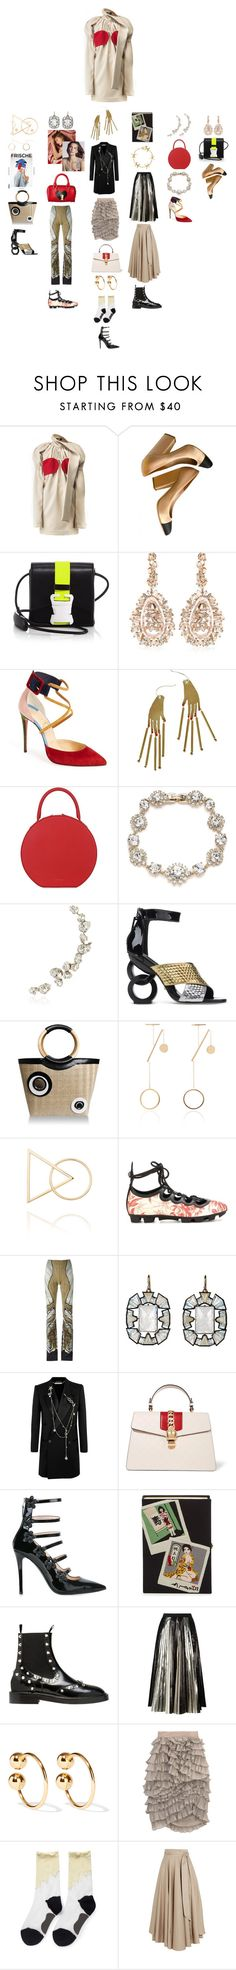 """""""Untitled #1947"""" by punchingwalls ❤ liked on Polyvore featuring Chanel, Christopher Kane, Suzanne Kalan, Christian Louboutin, Suzannah Wainhouse, Mansur Gavriel, Marchesa, Ryan Storer, Kat Maconie and Perrin"""